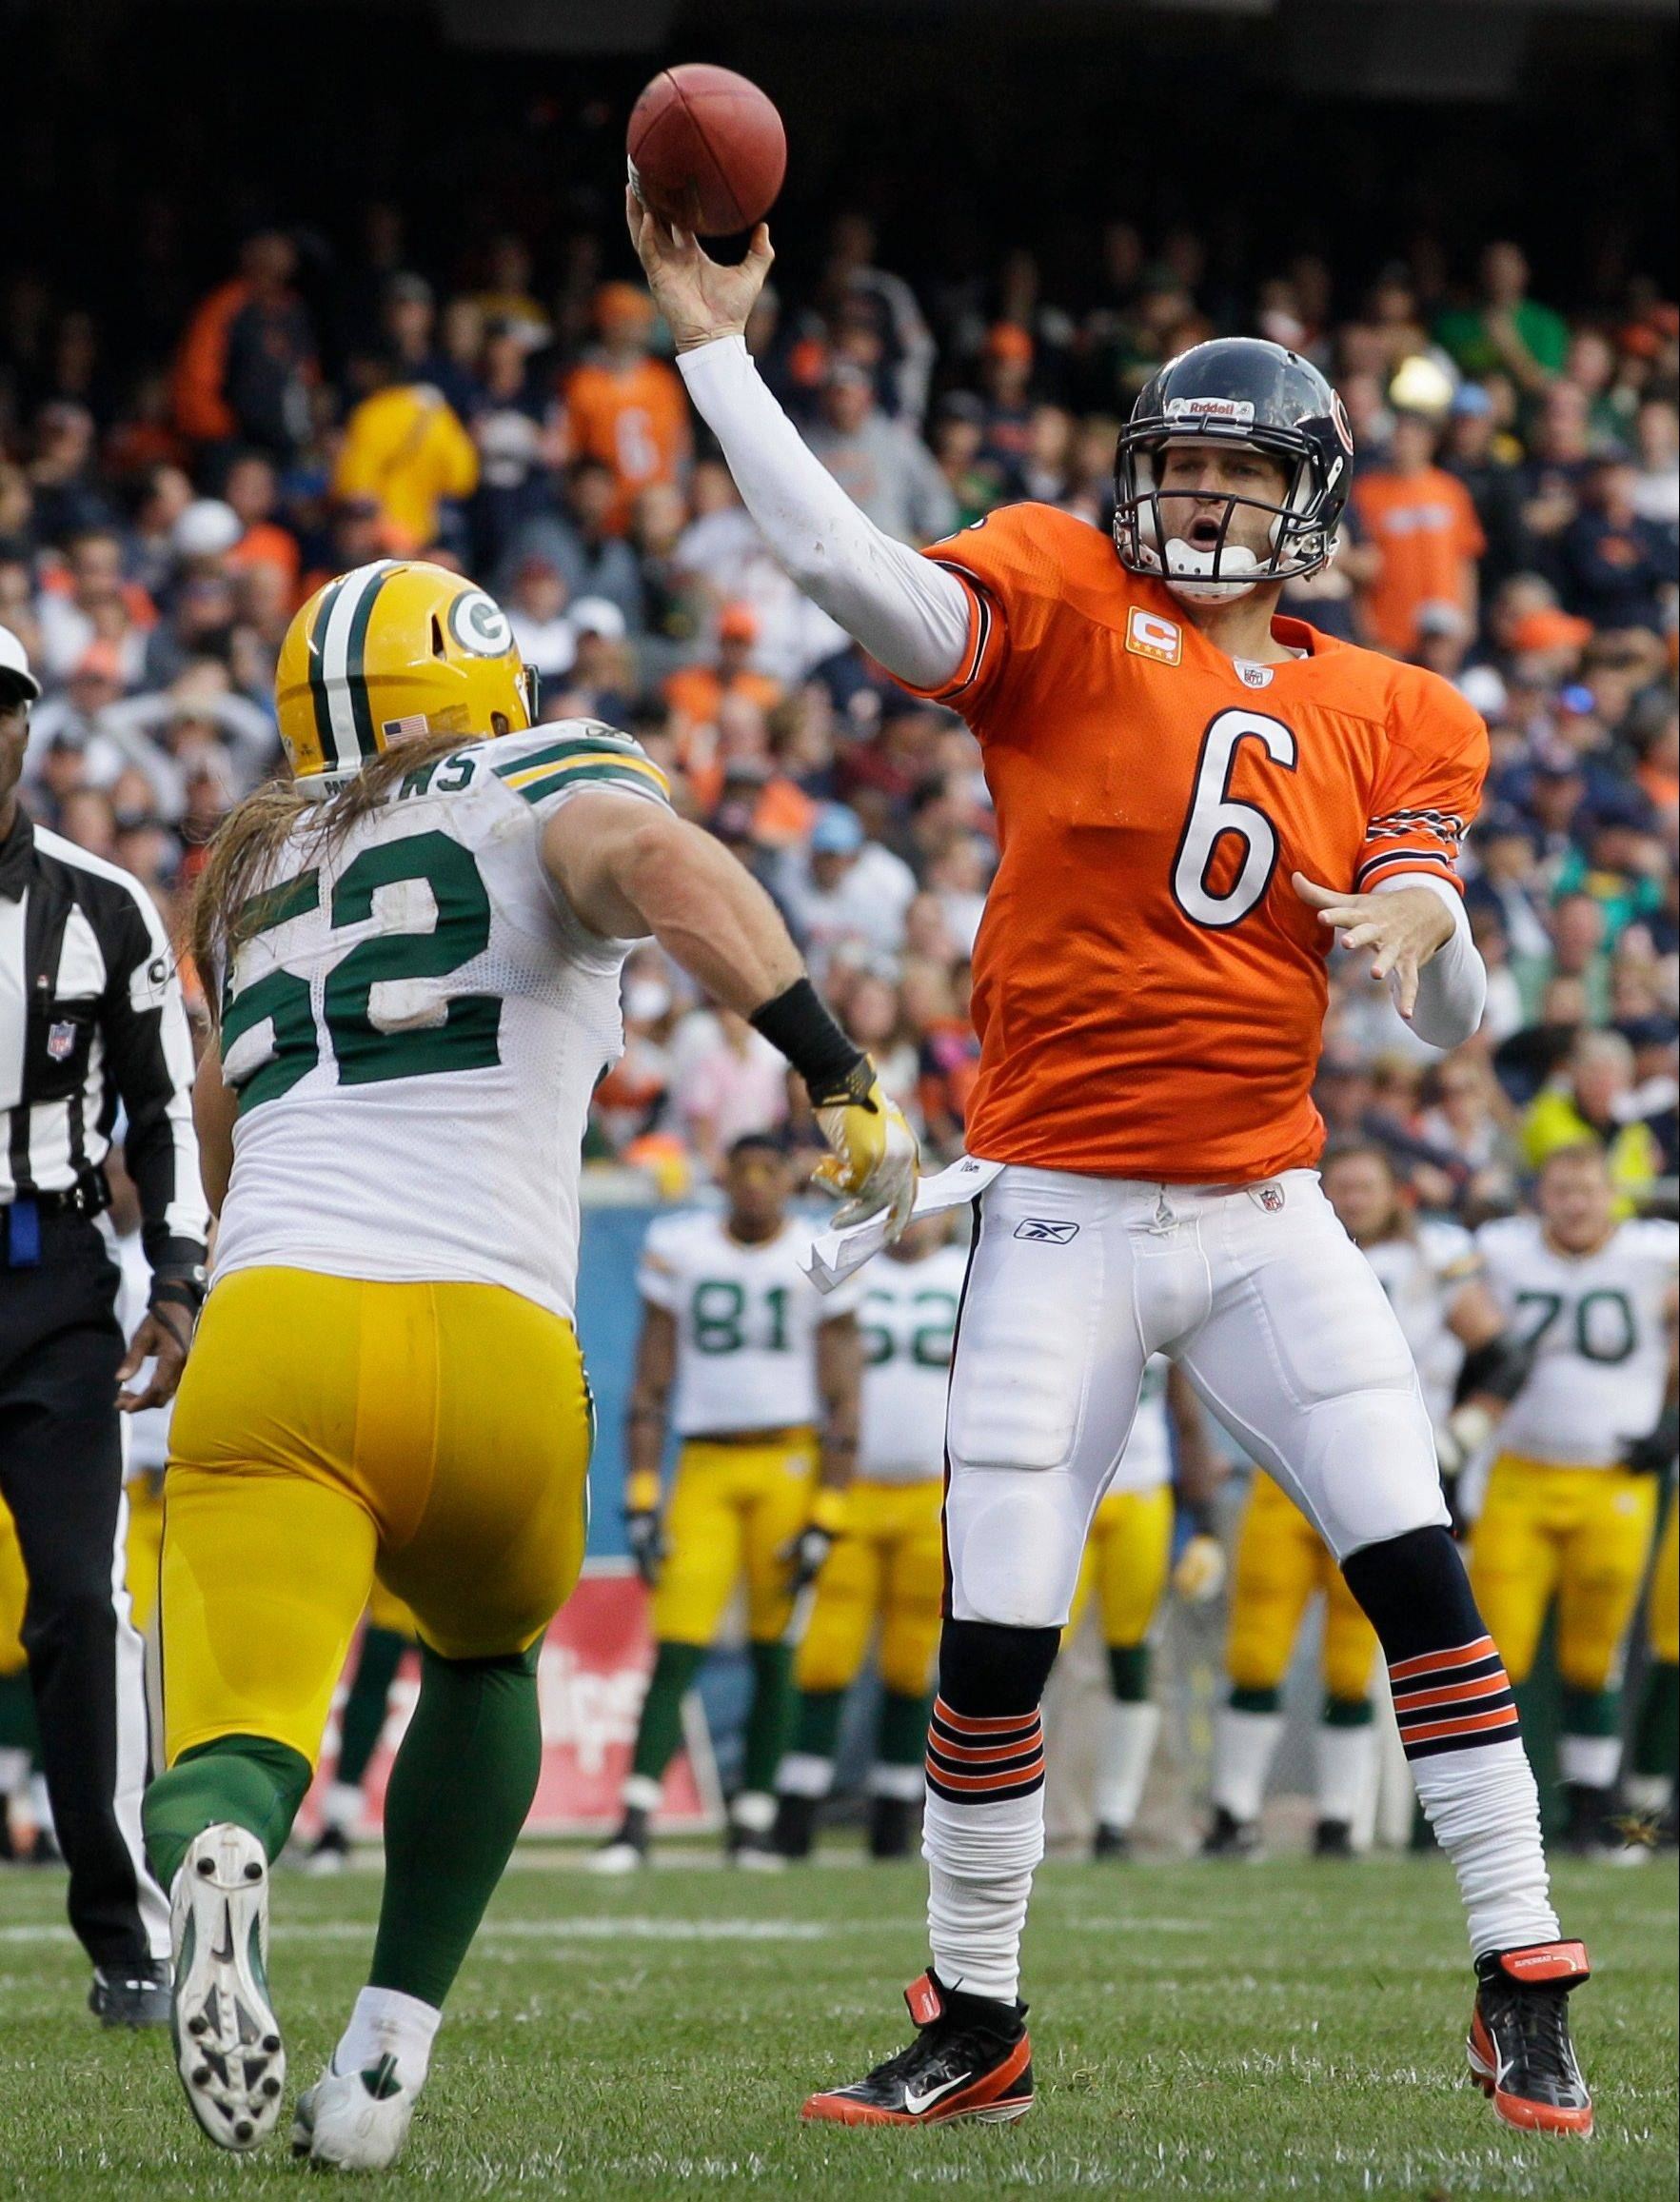 Linebacker Clay Matthews and his Packers teammates will see a new offensive look from quarterback Jay Cutler and the Bears Thursday in Green Bay, Wis.